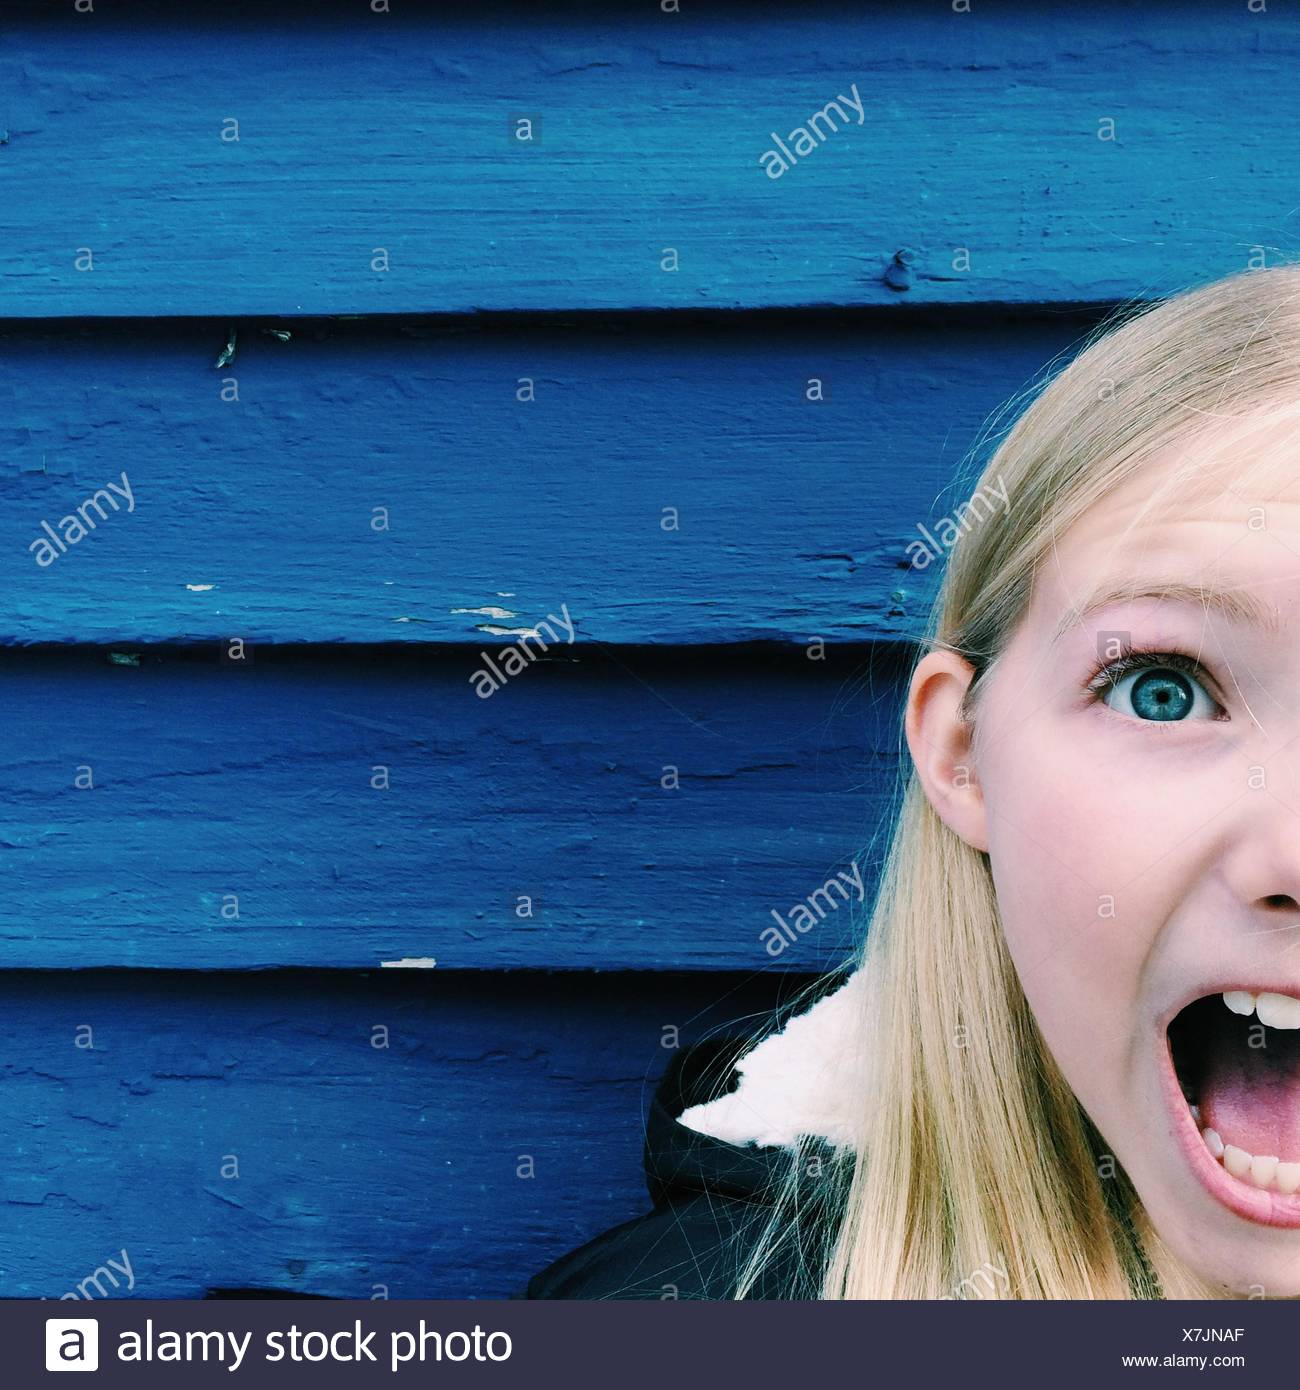 Portrait of a girl with her mouth open shouting - Stock Image